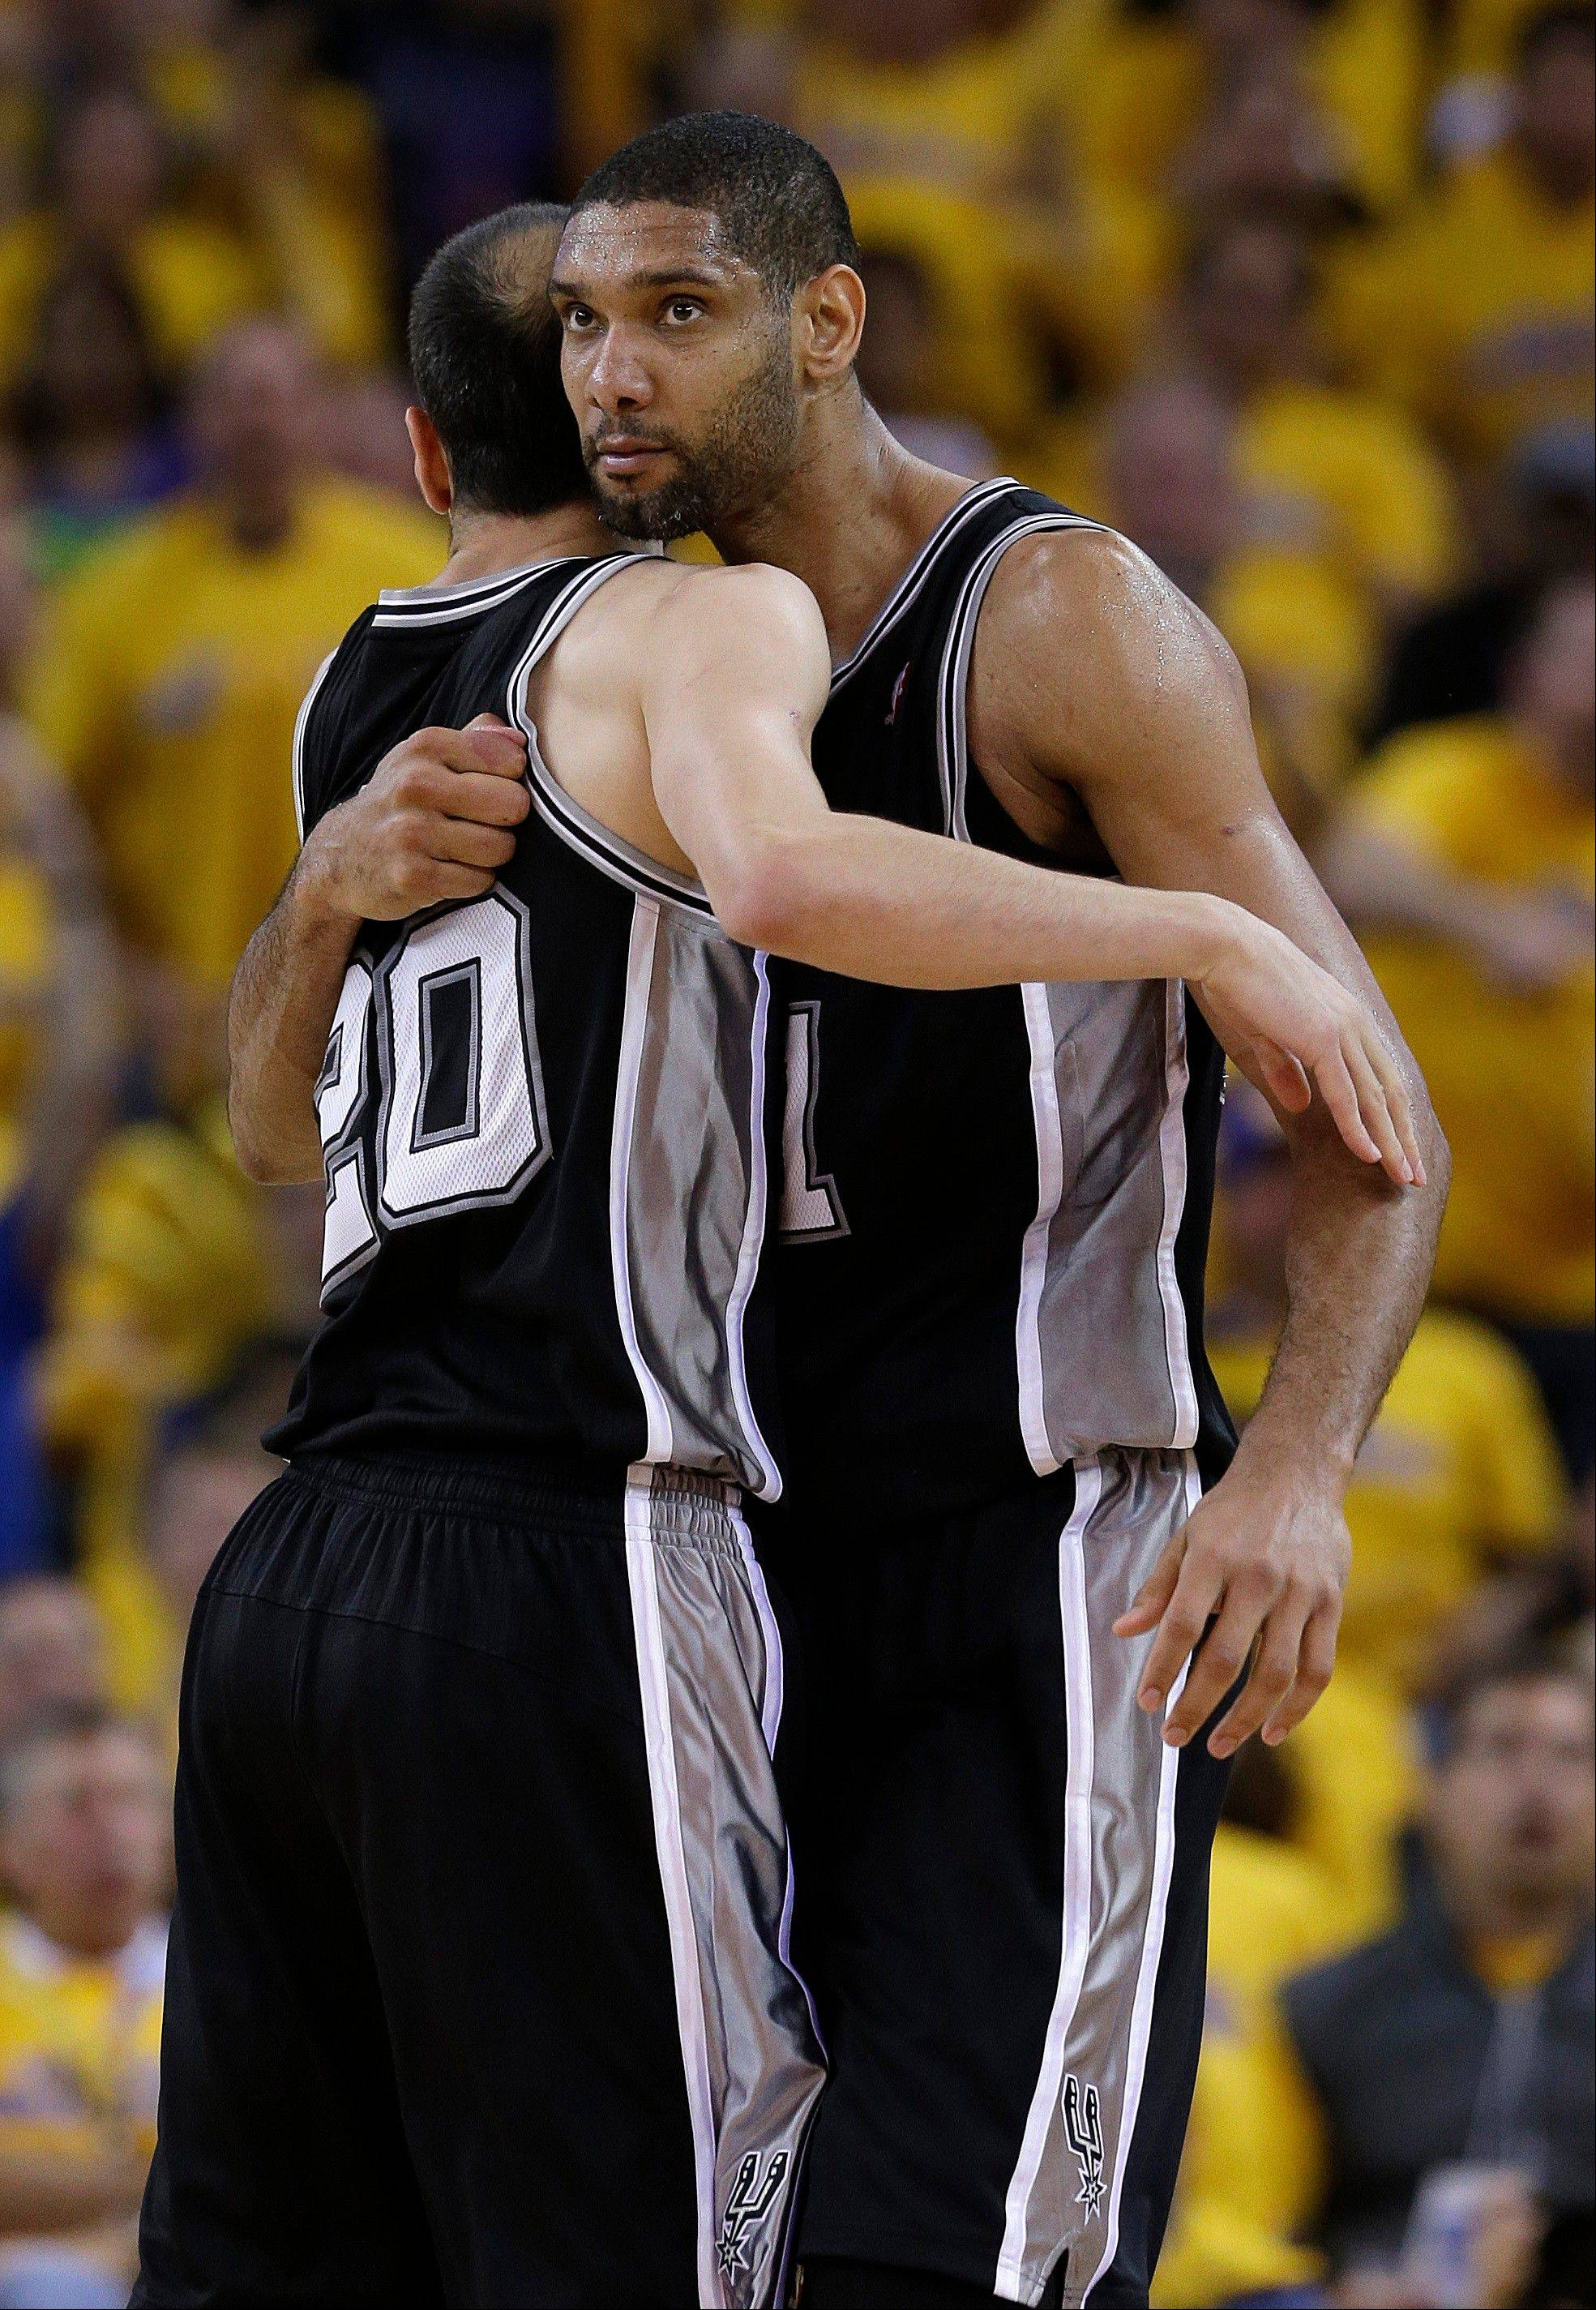 San Antonio Spurs forward Tim Duncan, right, hugs shooting guard Manu Ginobili (20), after Duncan made a basket during the fourth quarter of Game 3 of a Western Conference semifinal NBA basketball playoff series in Oakland, Calif., Friday, May 10, 2013. The Spurs won 102-92.